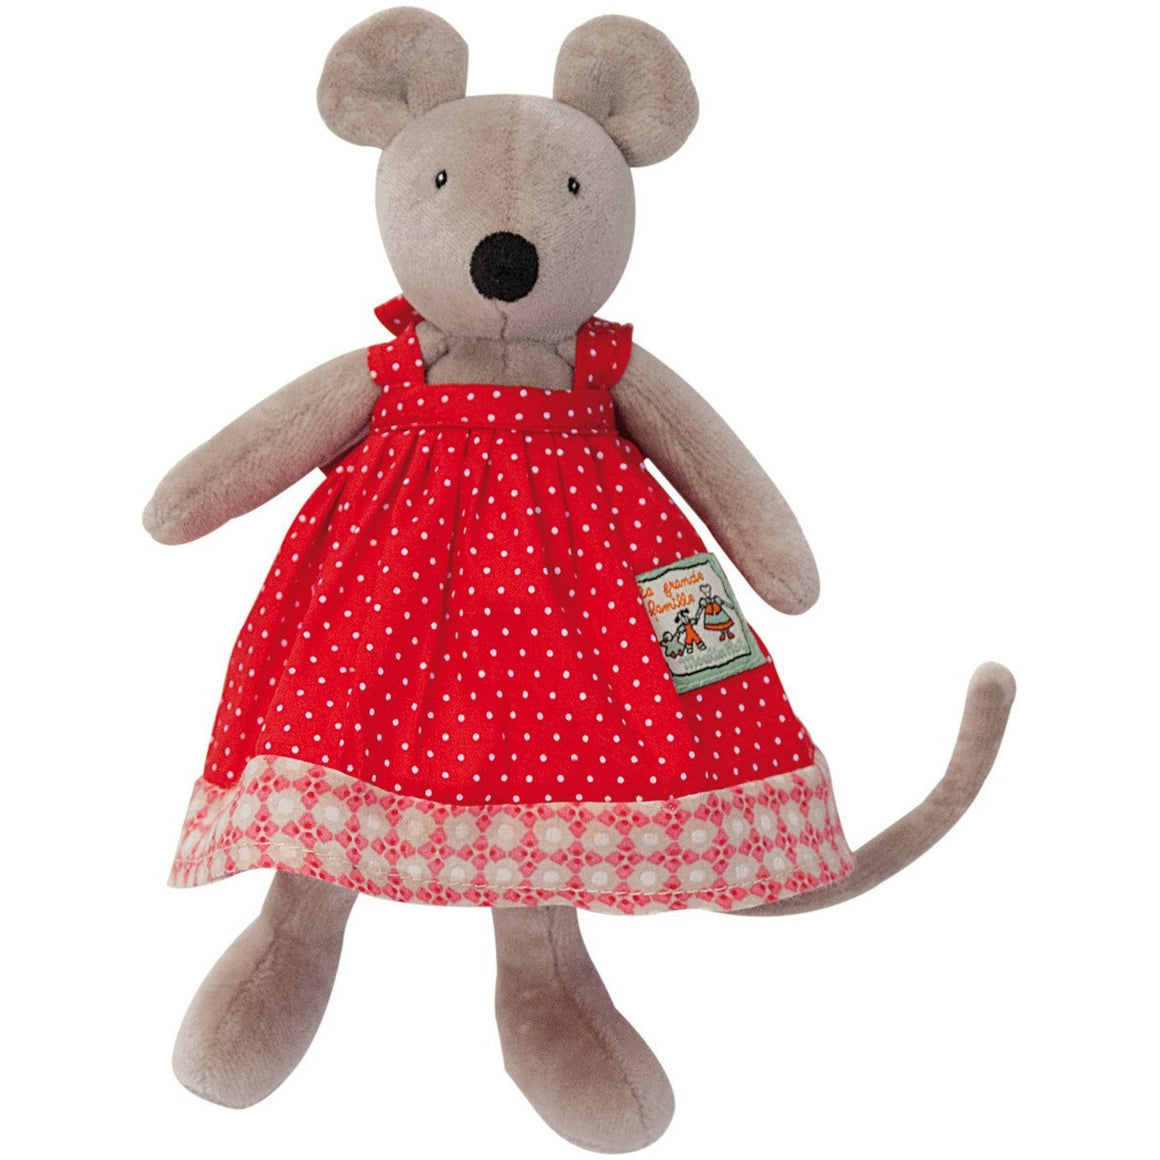 Nini the French Mouse - French Carousel